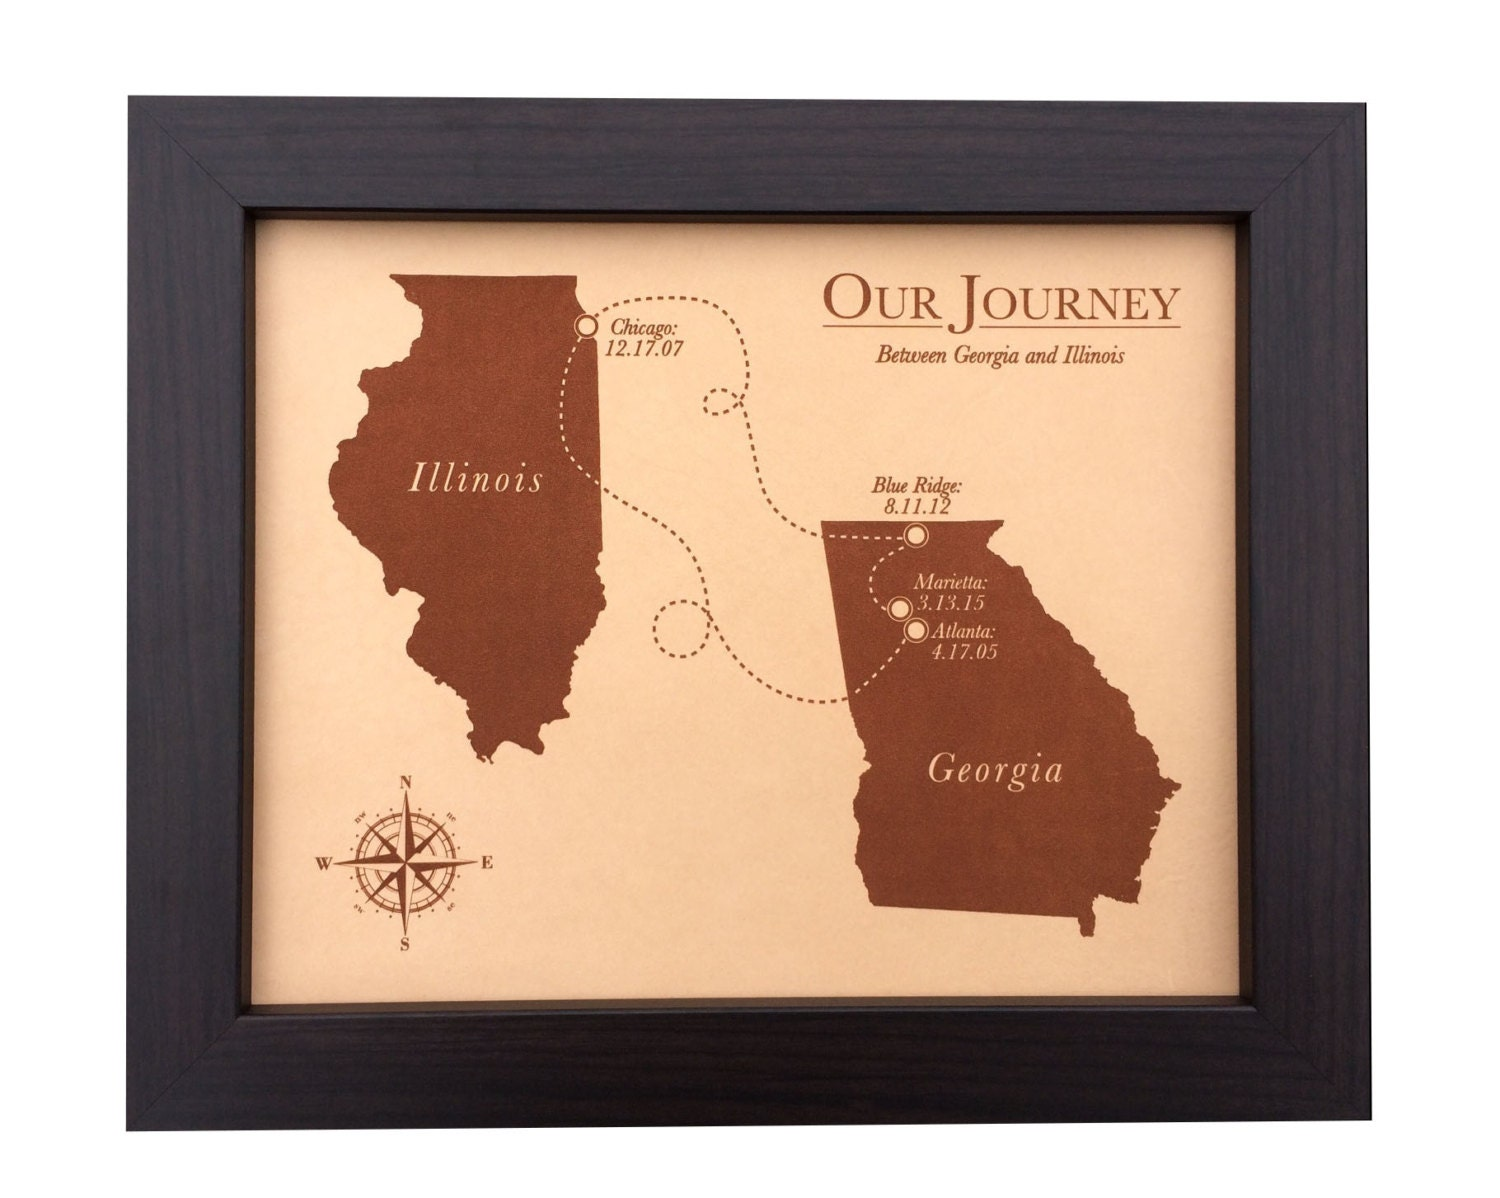 3rd Wedding Anniversary Gift For Husband: Leather Anniversary Gift Laser Engraved Map 3rd